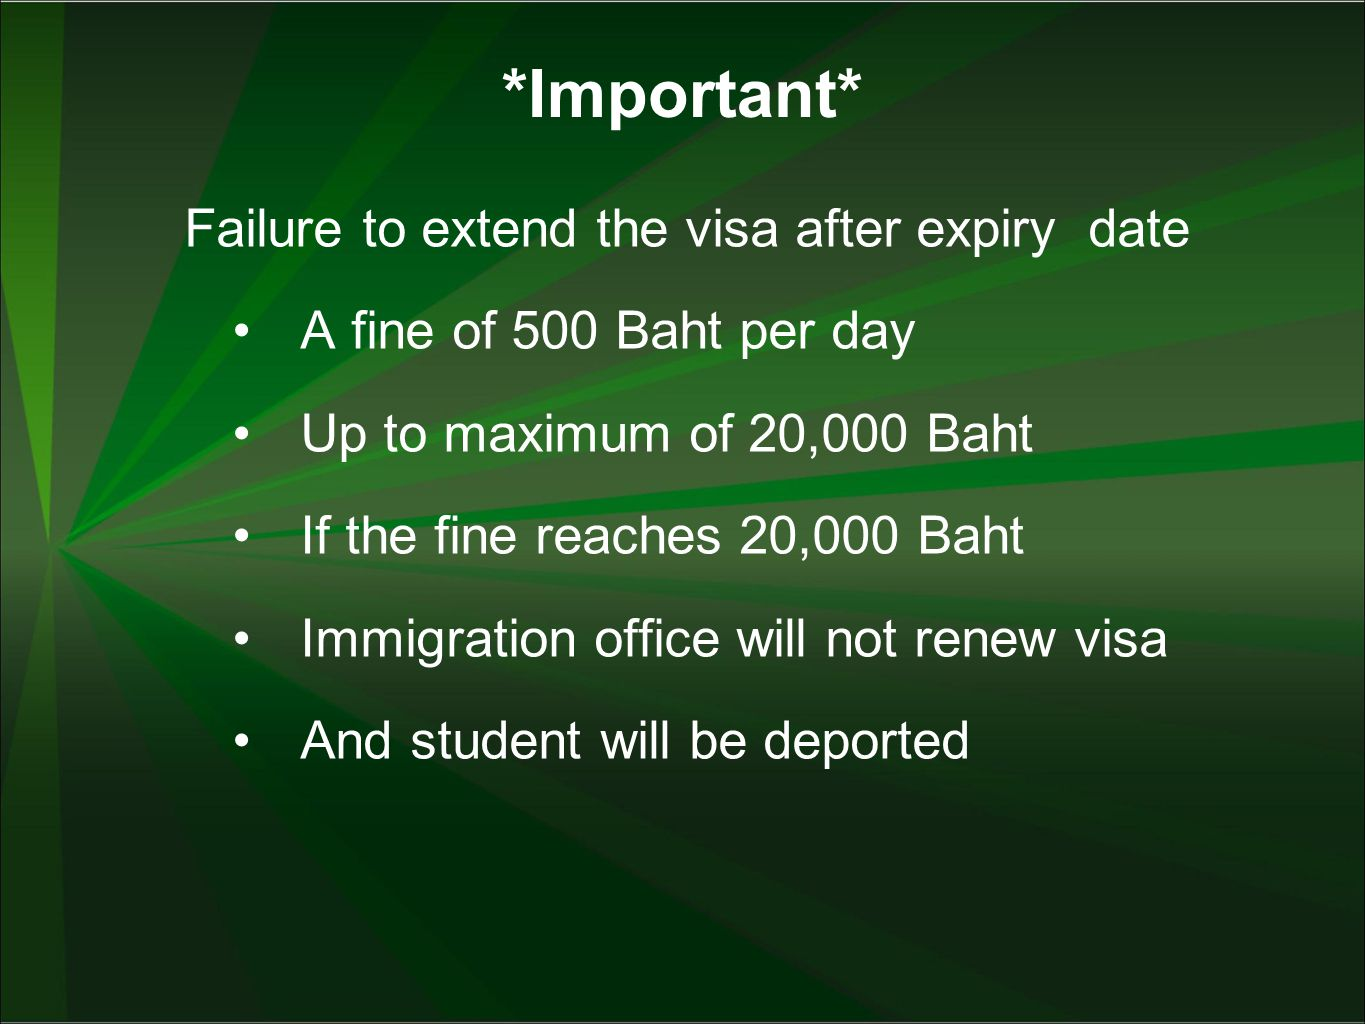 *Important* Failure to extend the visa after expiry date A fine of 500 Baht per day Up to maximum of 20,000 Baht If the fine reaches 20,000 Baht Immig